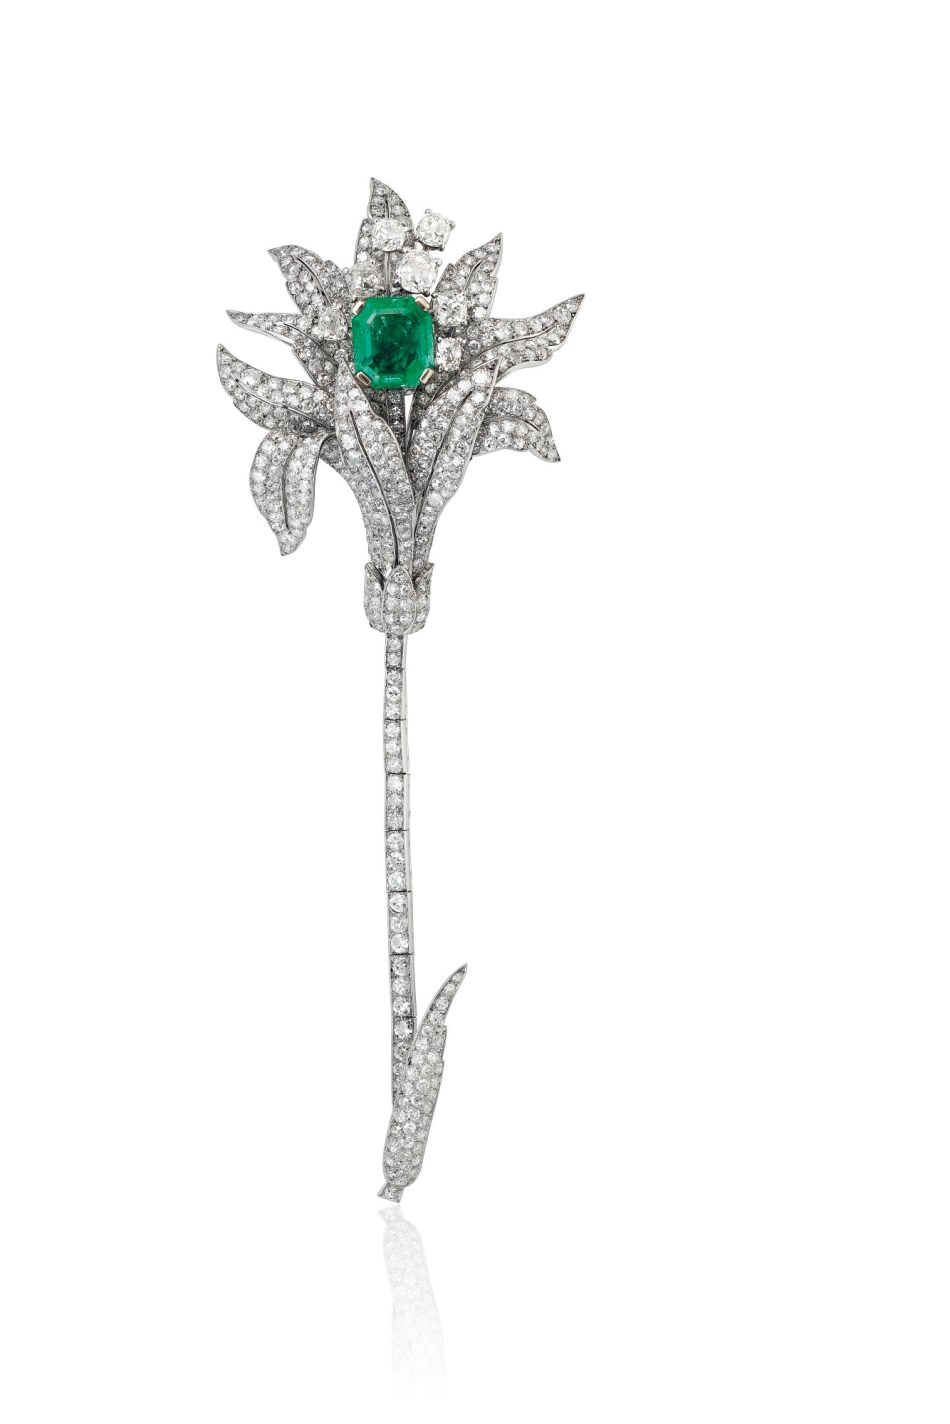 MID-20TH CENTURY EMERALD AND DIAMOND BROOCH, CARTIER